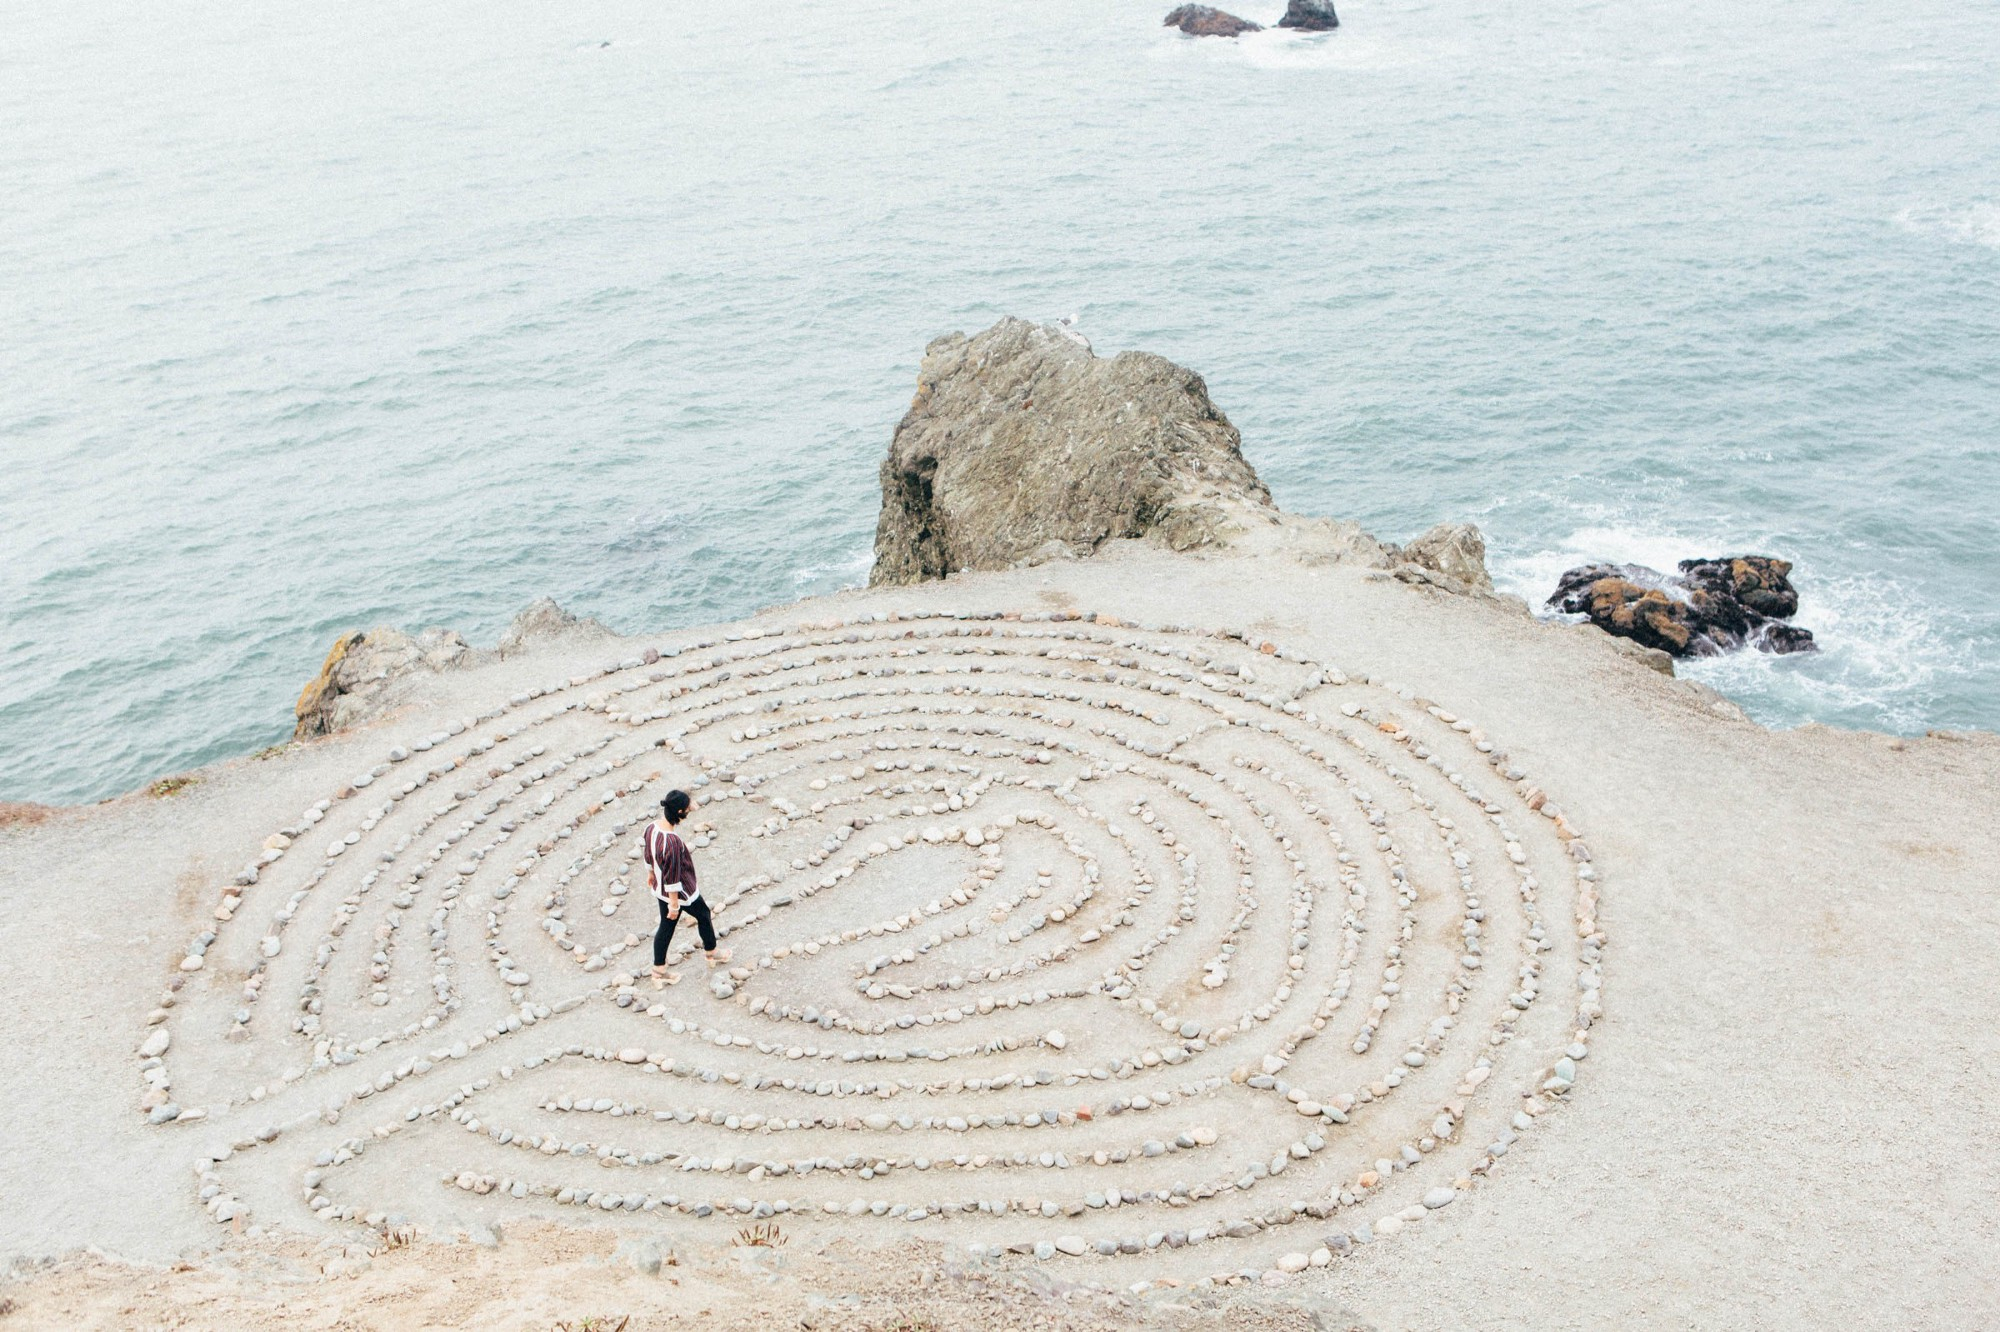 Person's going through the maze on the beach with rocks